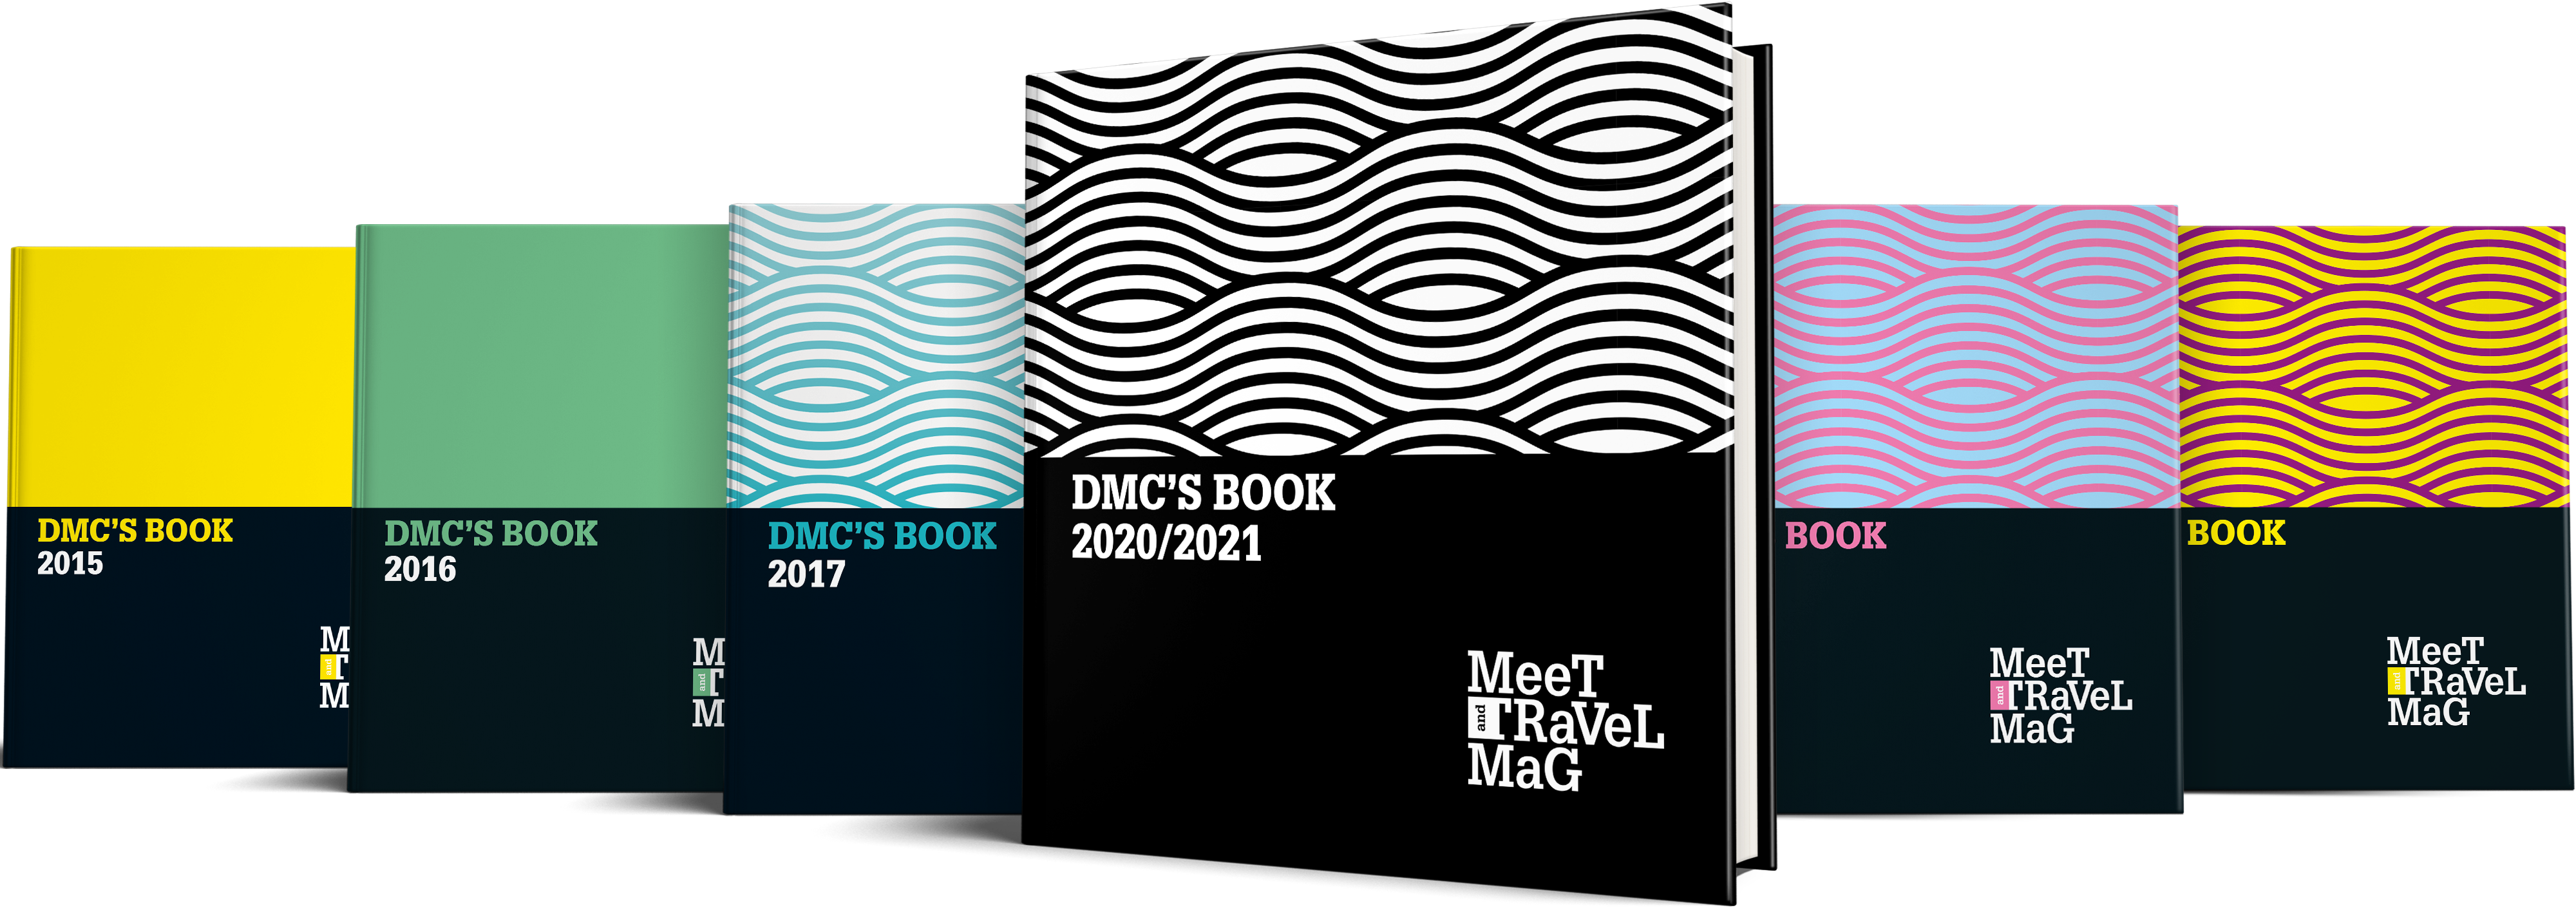 DMC Book Couvertures